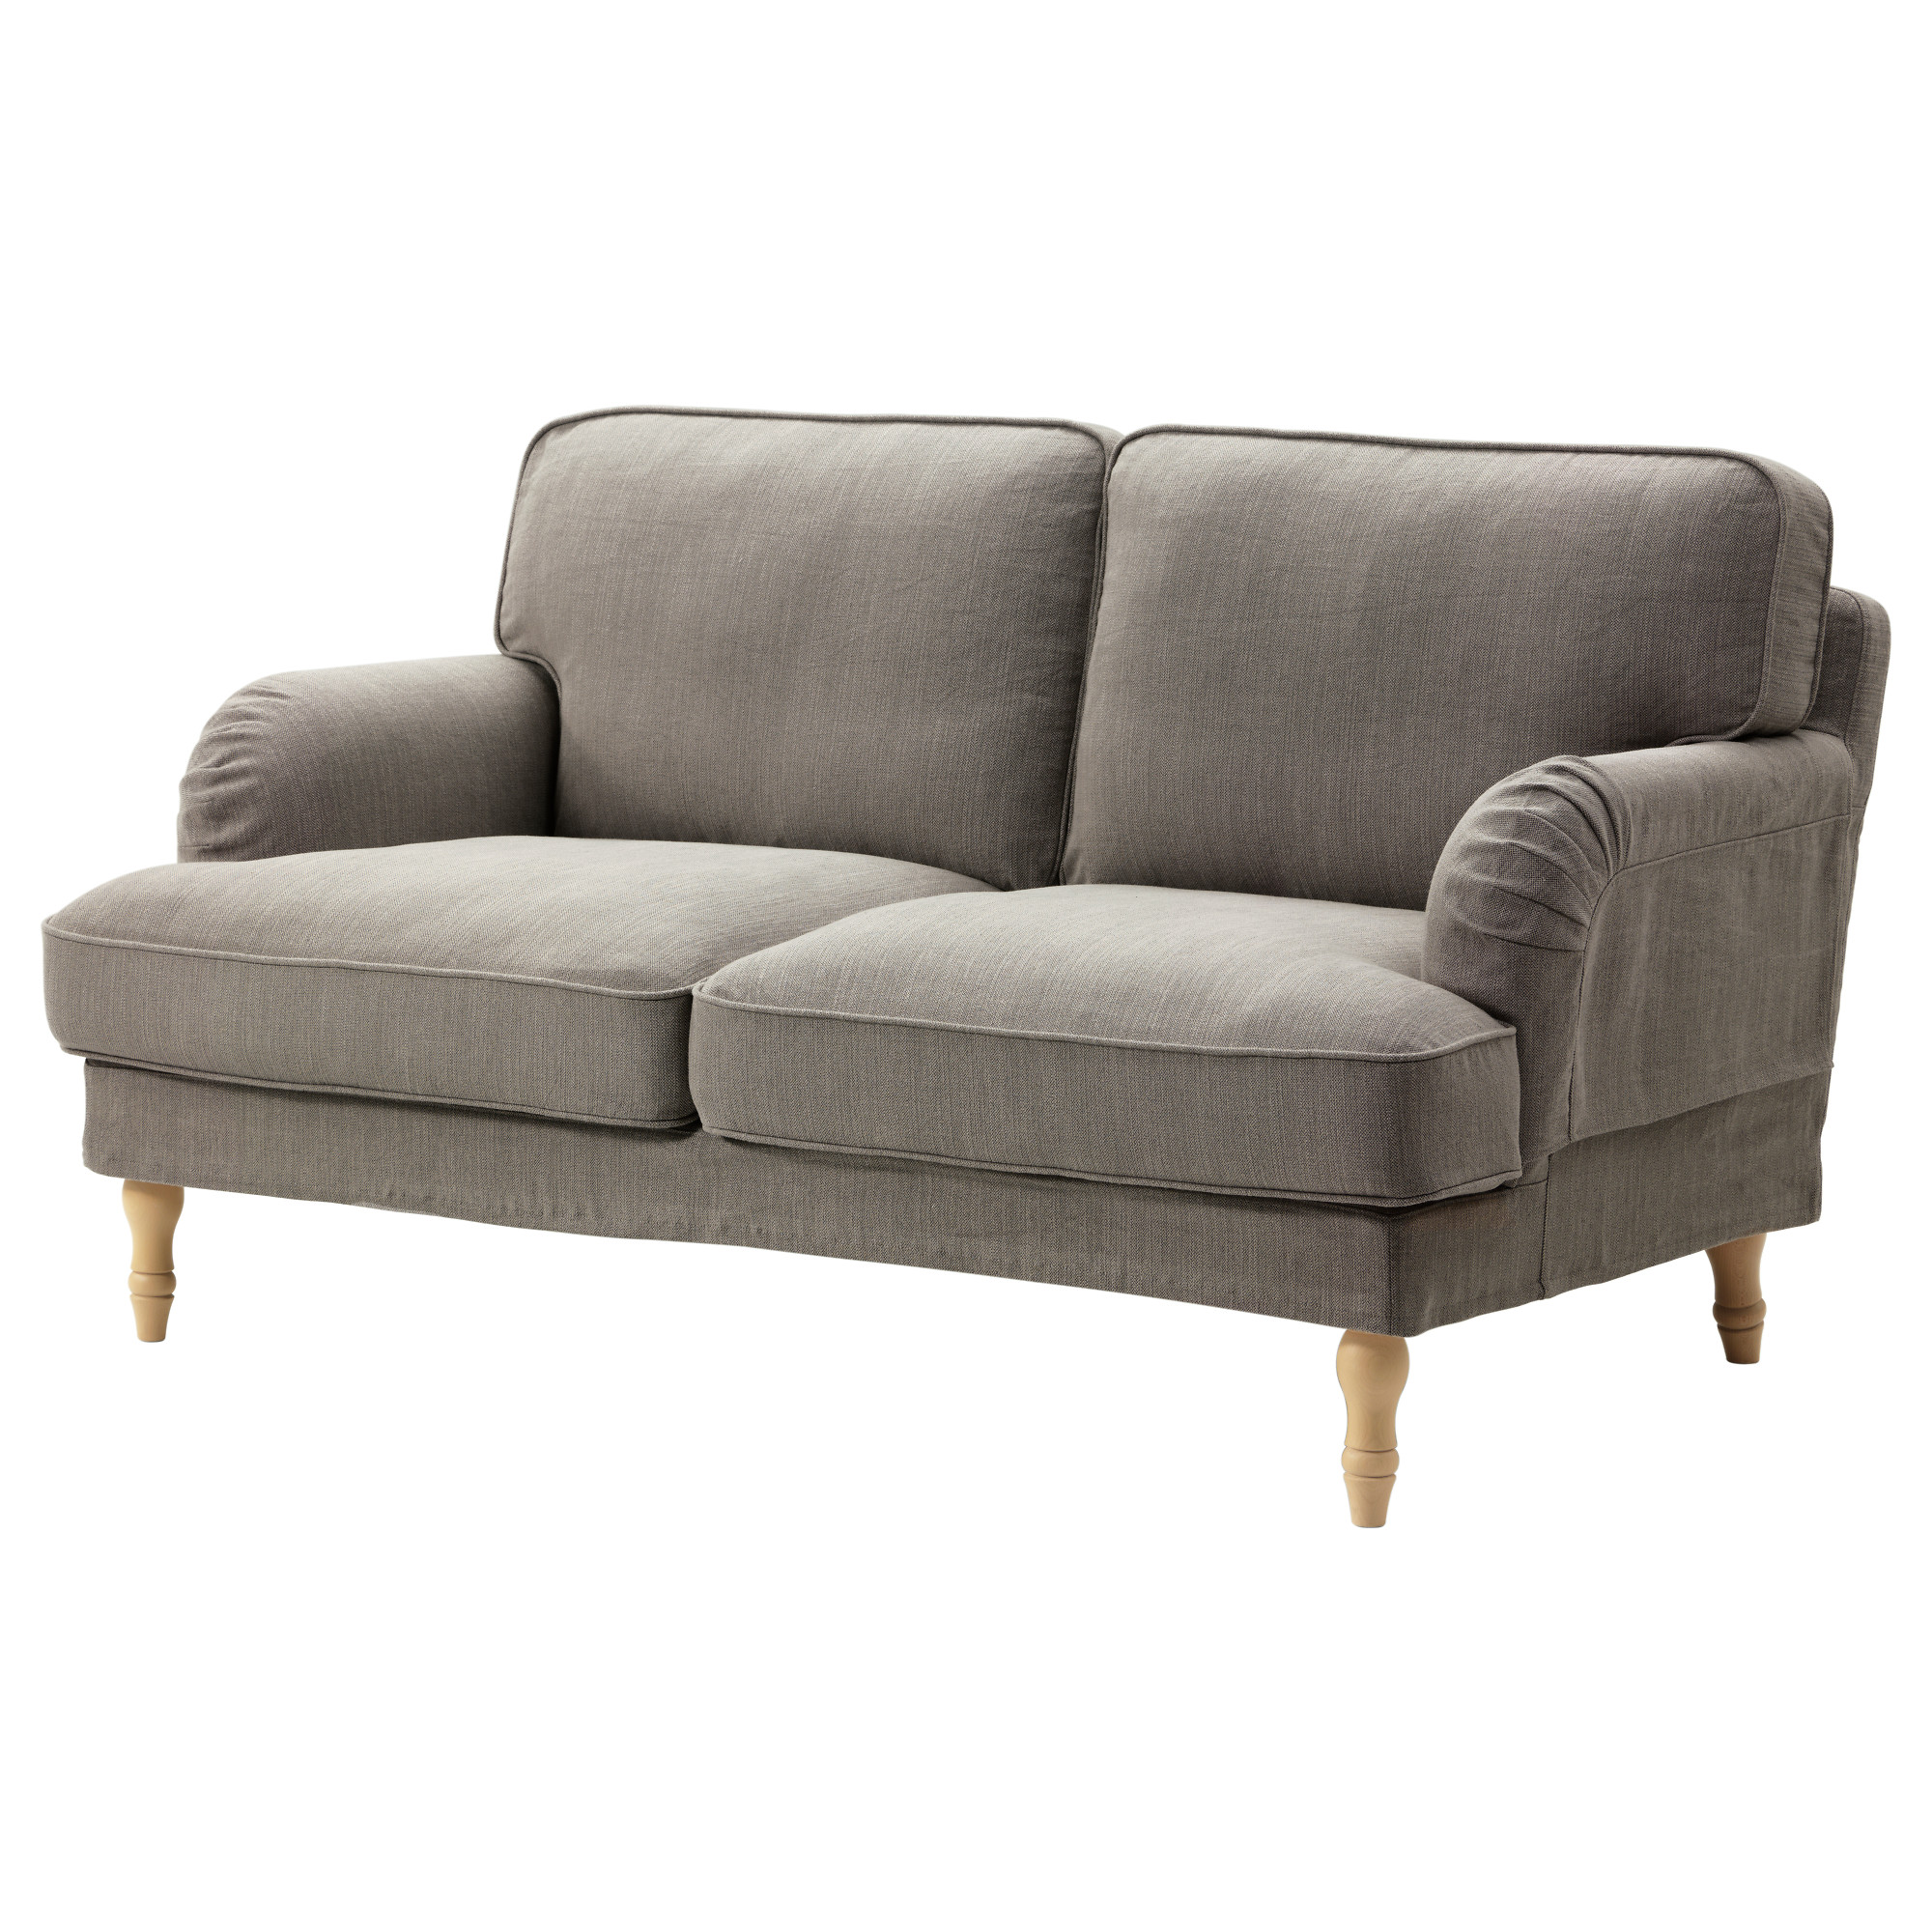 Fabric Loveseats IKEA - Love seat and sofa